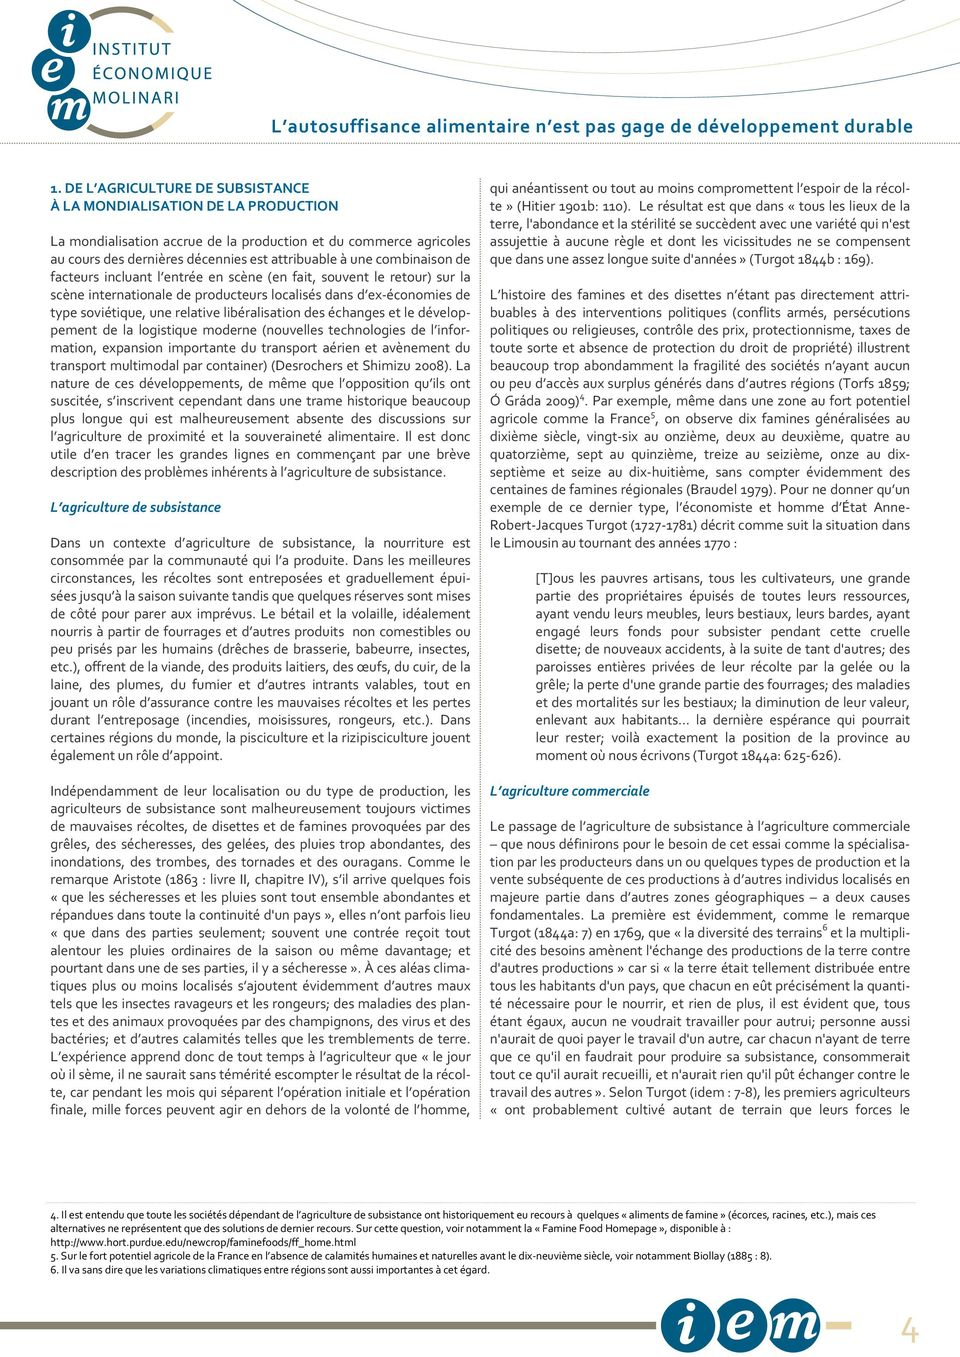 libéralisation des échanges et le développement de la logistique moderne (nouvelles technologies de l information, expansion importante du transport aérien et avènement du transport multimodal par